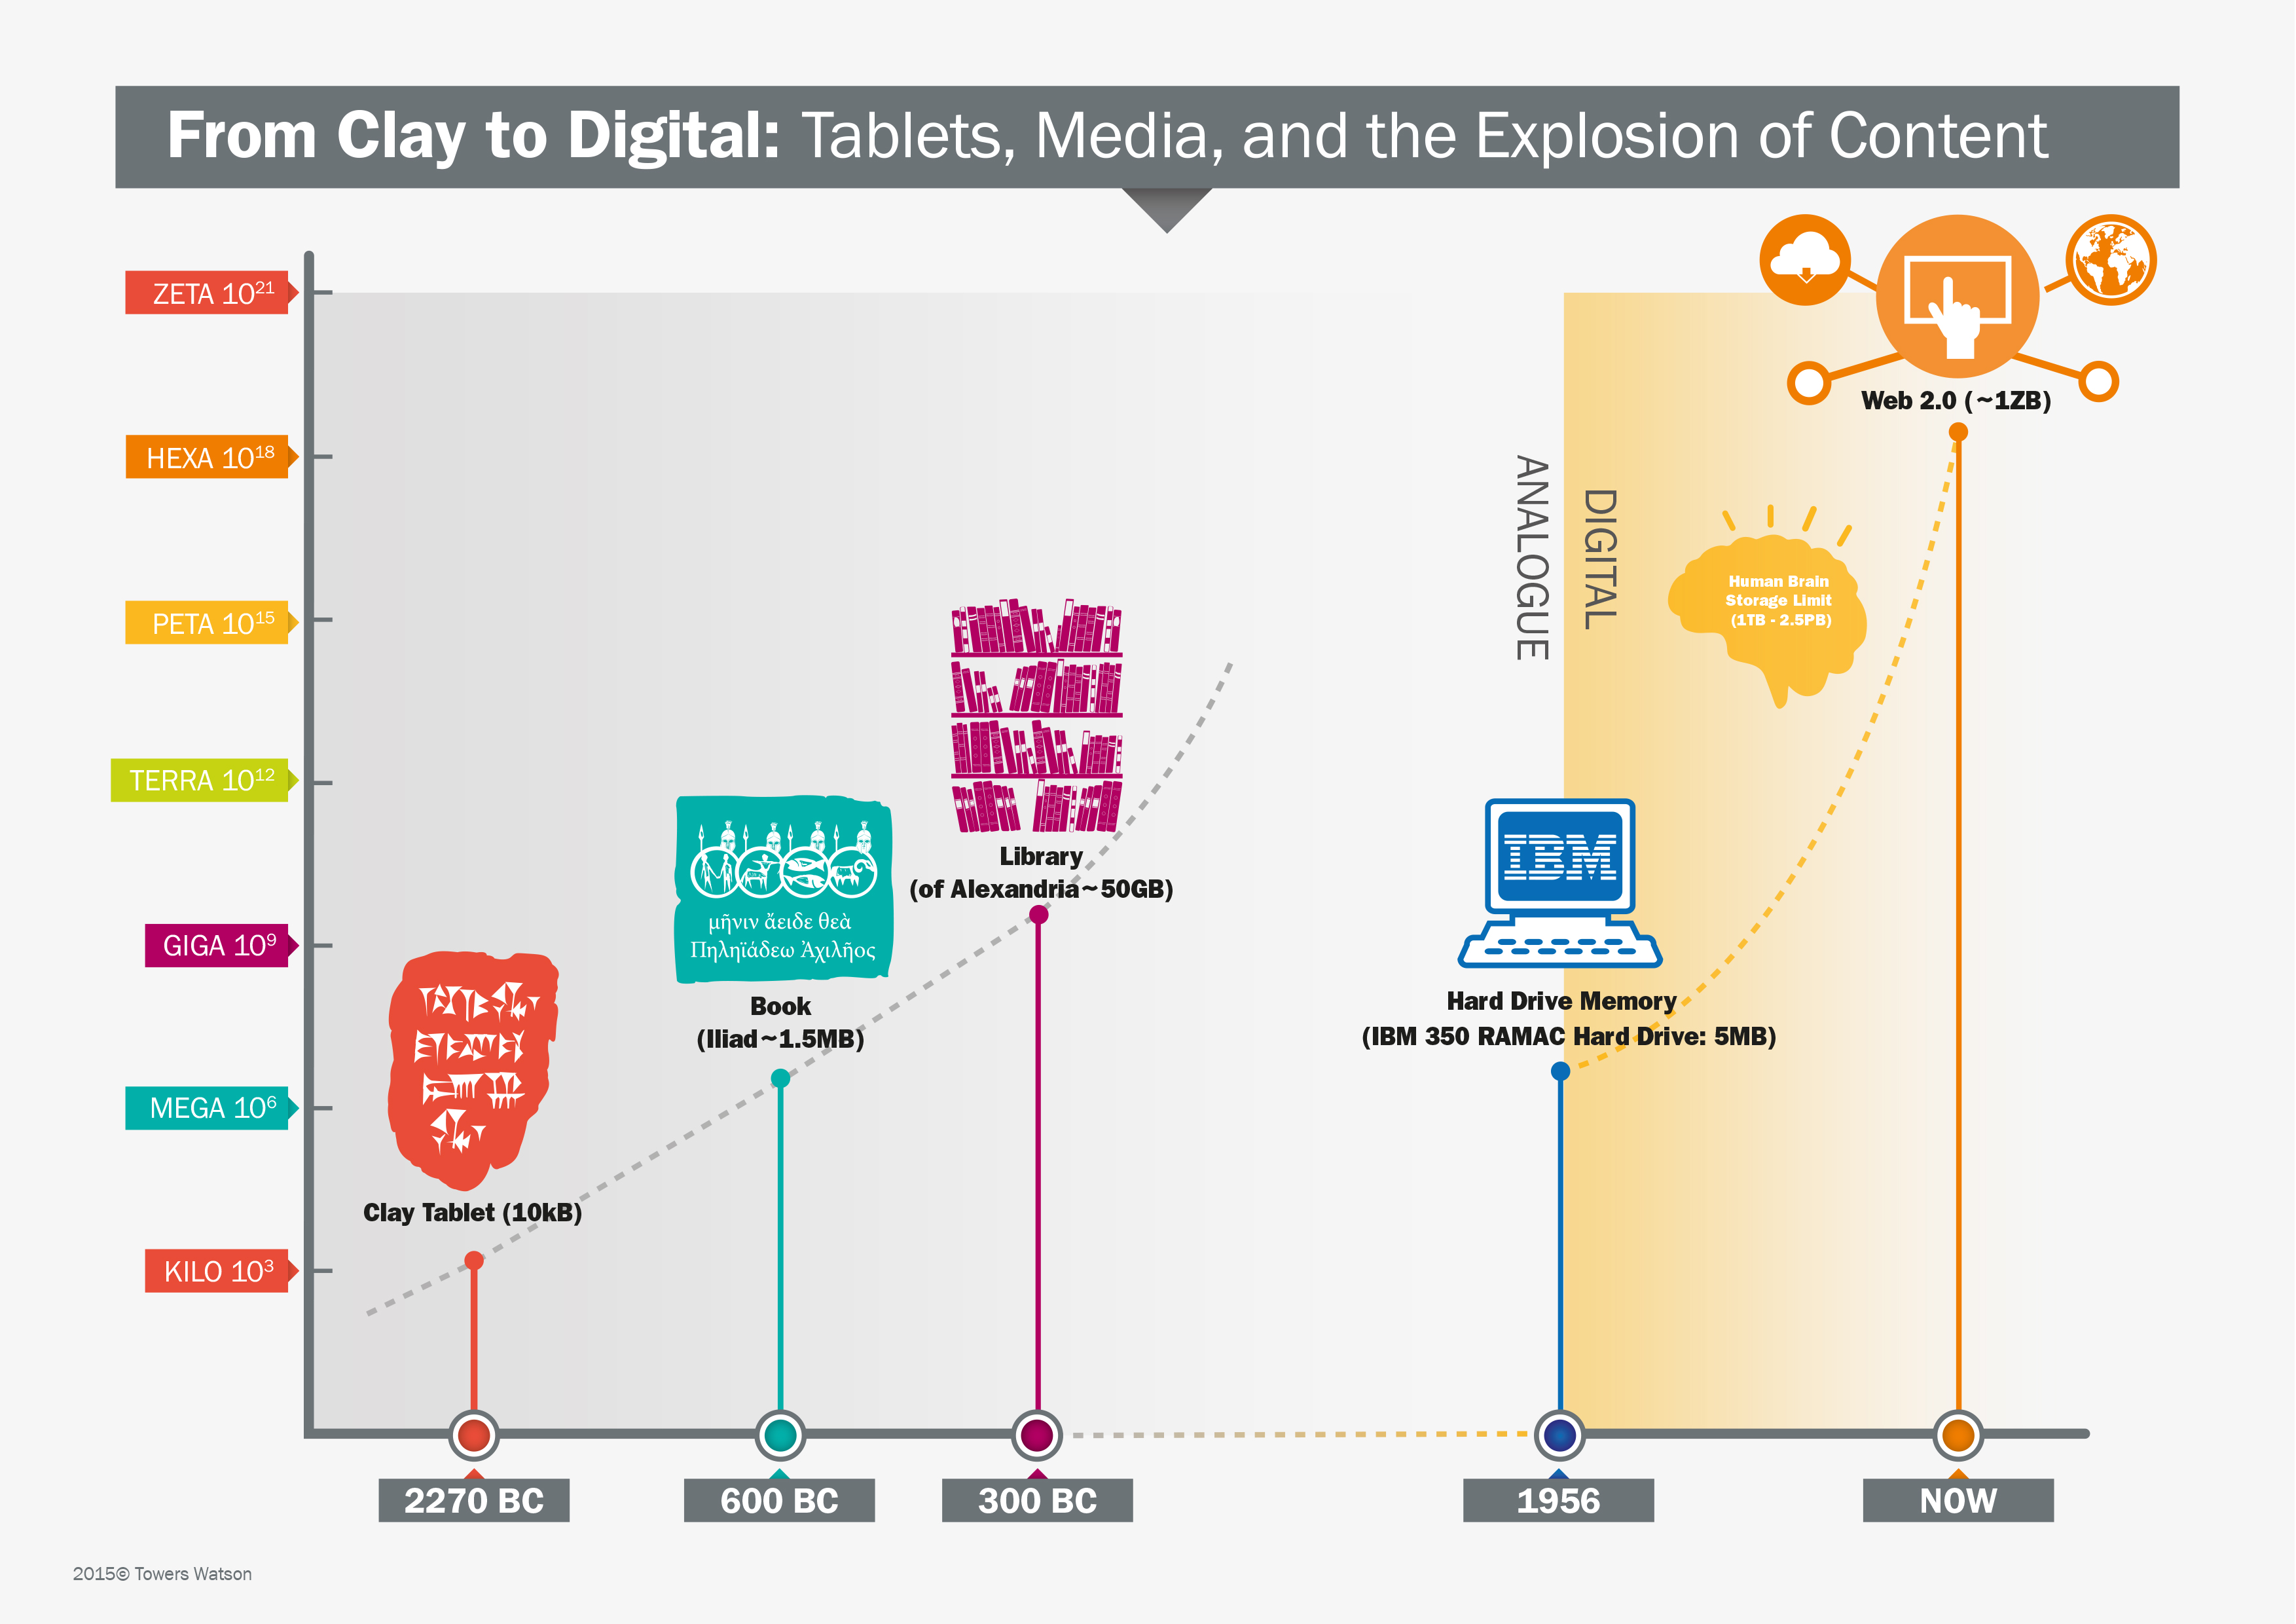 TW-From Clay to Digital-InfoGraphic-15 V1.1(AF)